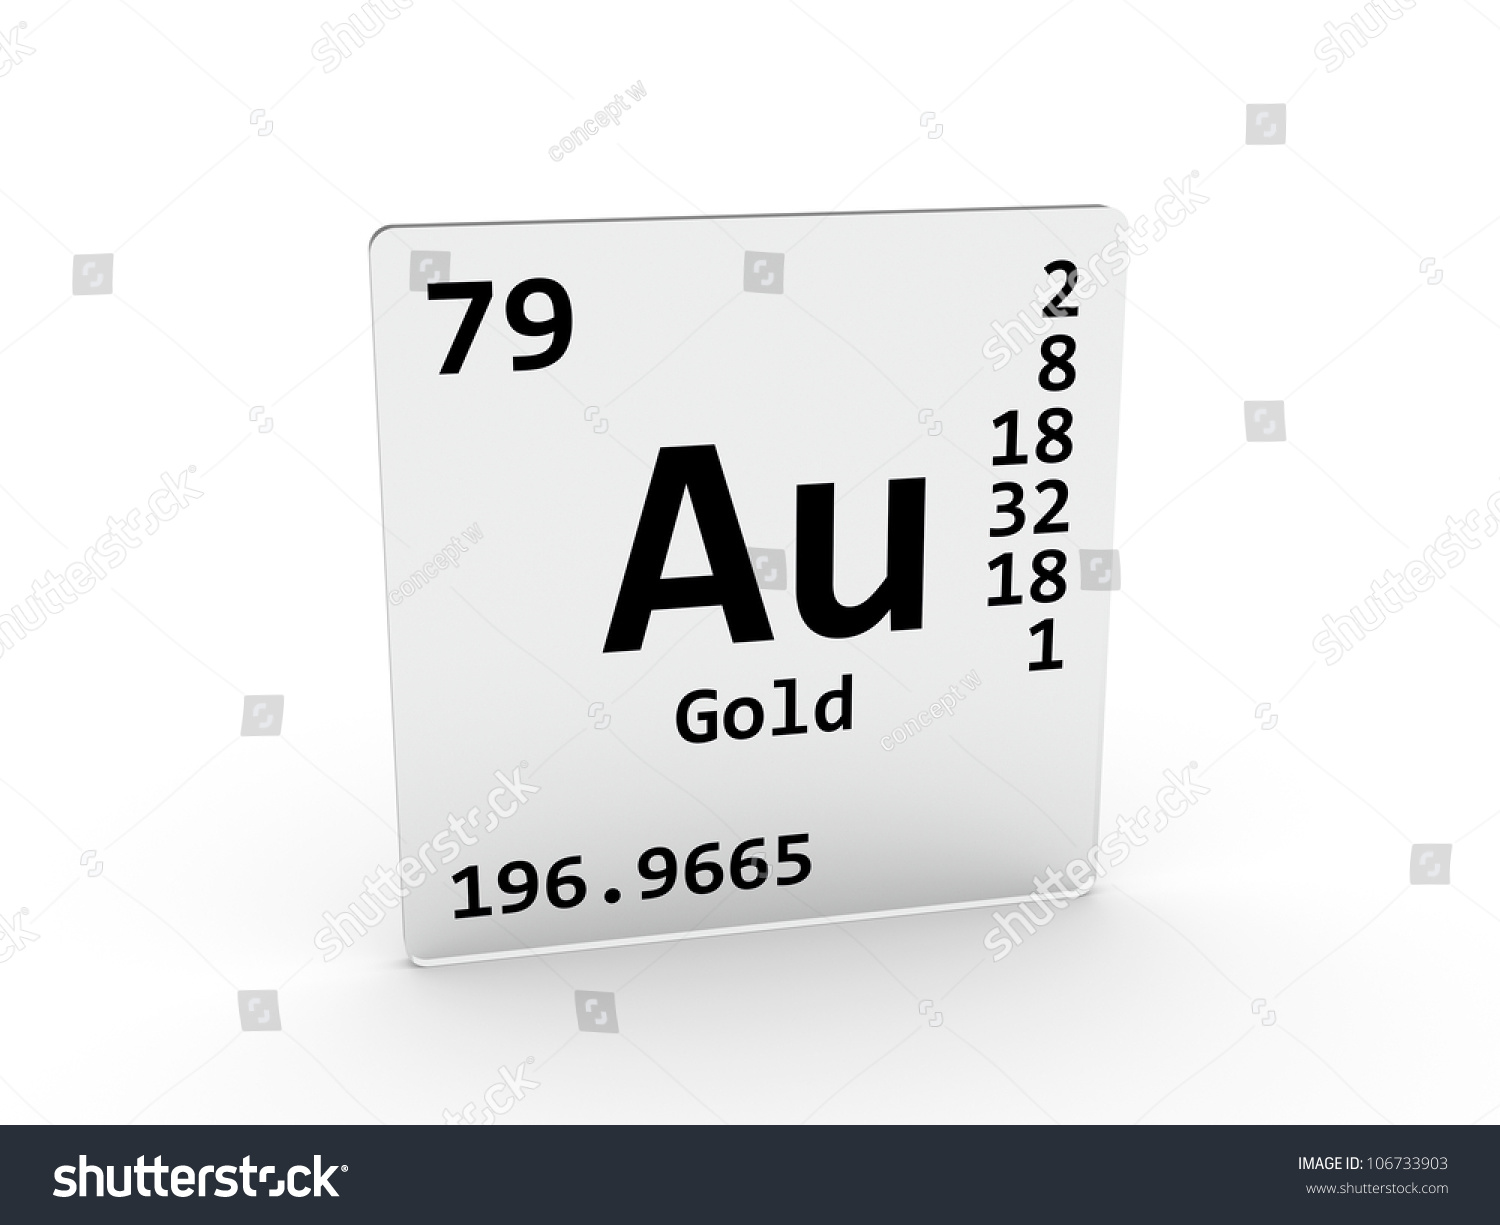 Gold symbol au element periodic table stock illustration 106733903 gold symbol au element of the periodic table urtaz Gallery